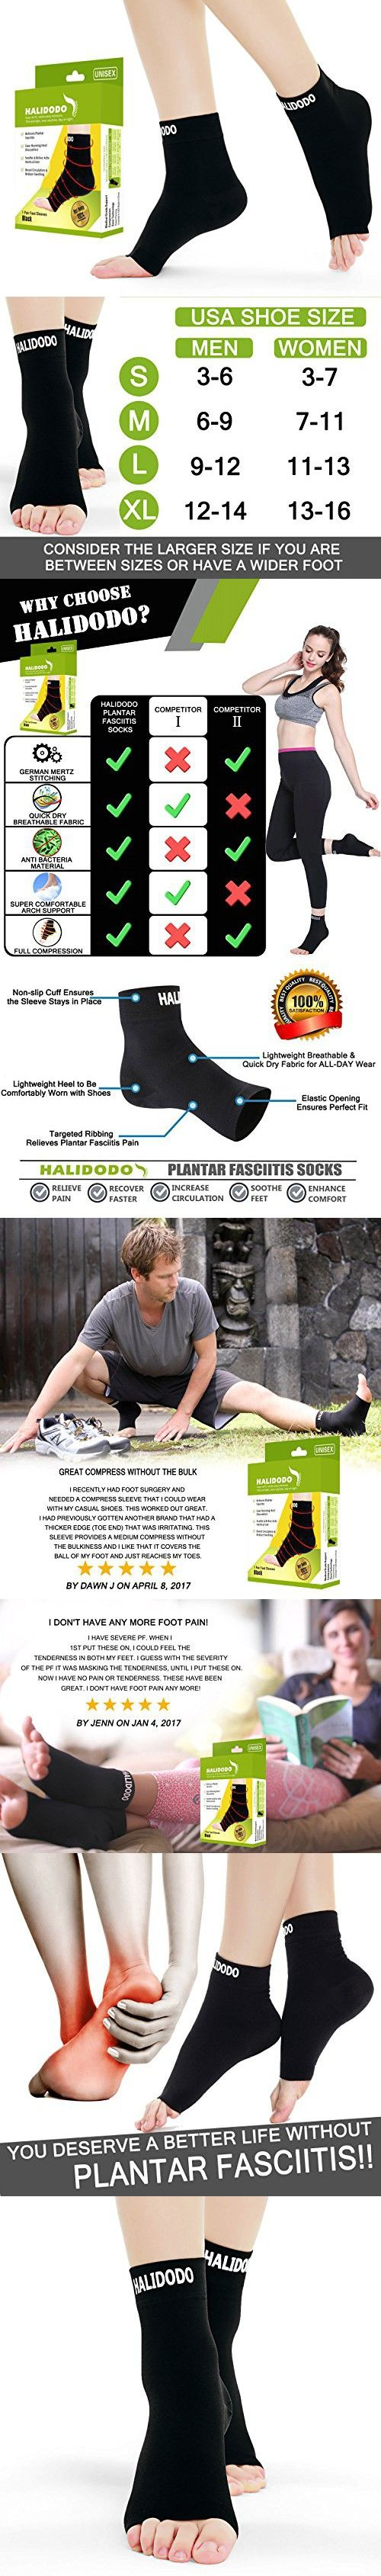 Plantar Fasciitis Socks with Arch & Foot Support Compression Foot Sleeves for Effective Heel, Arch & Ankle Support Improves Circulation, Soothes Achy Feet, Minimizes Foot Pain (1 Pair, Black)